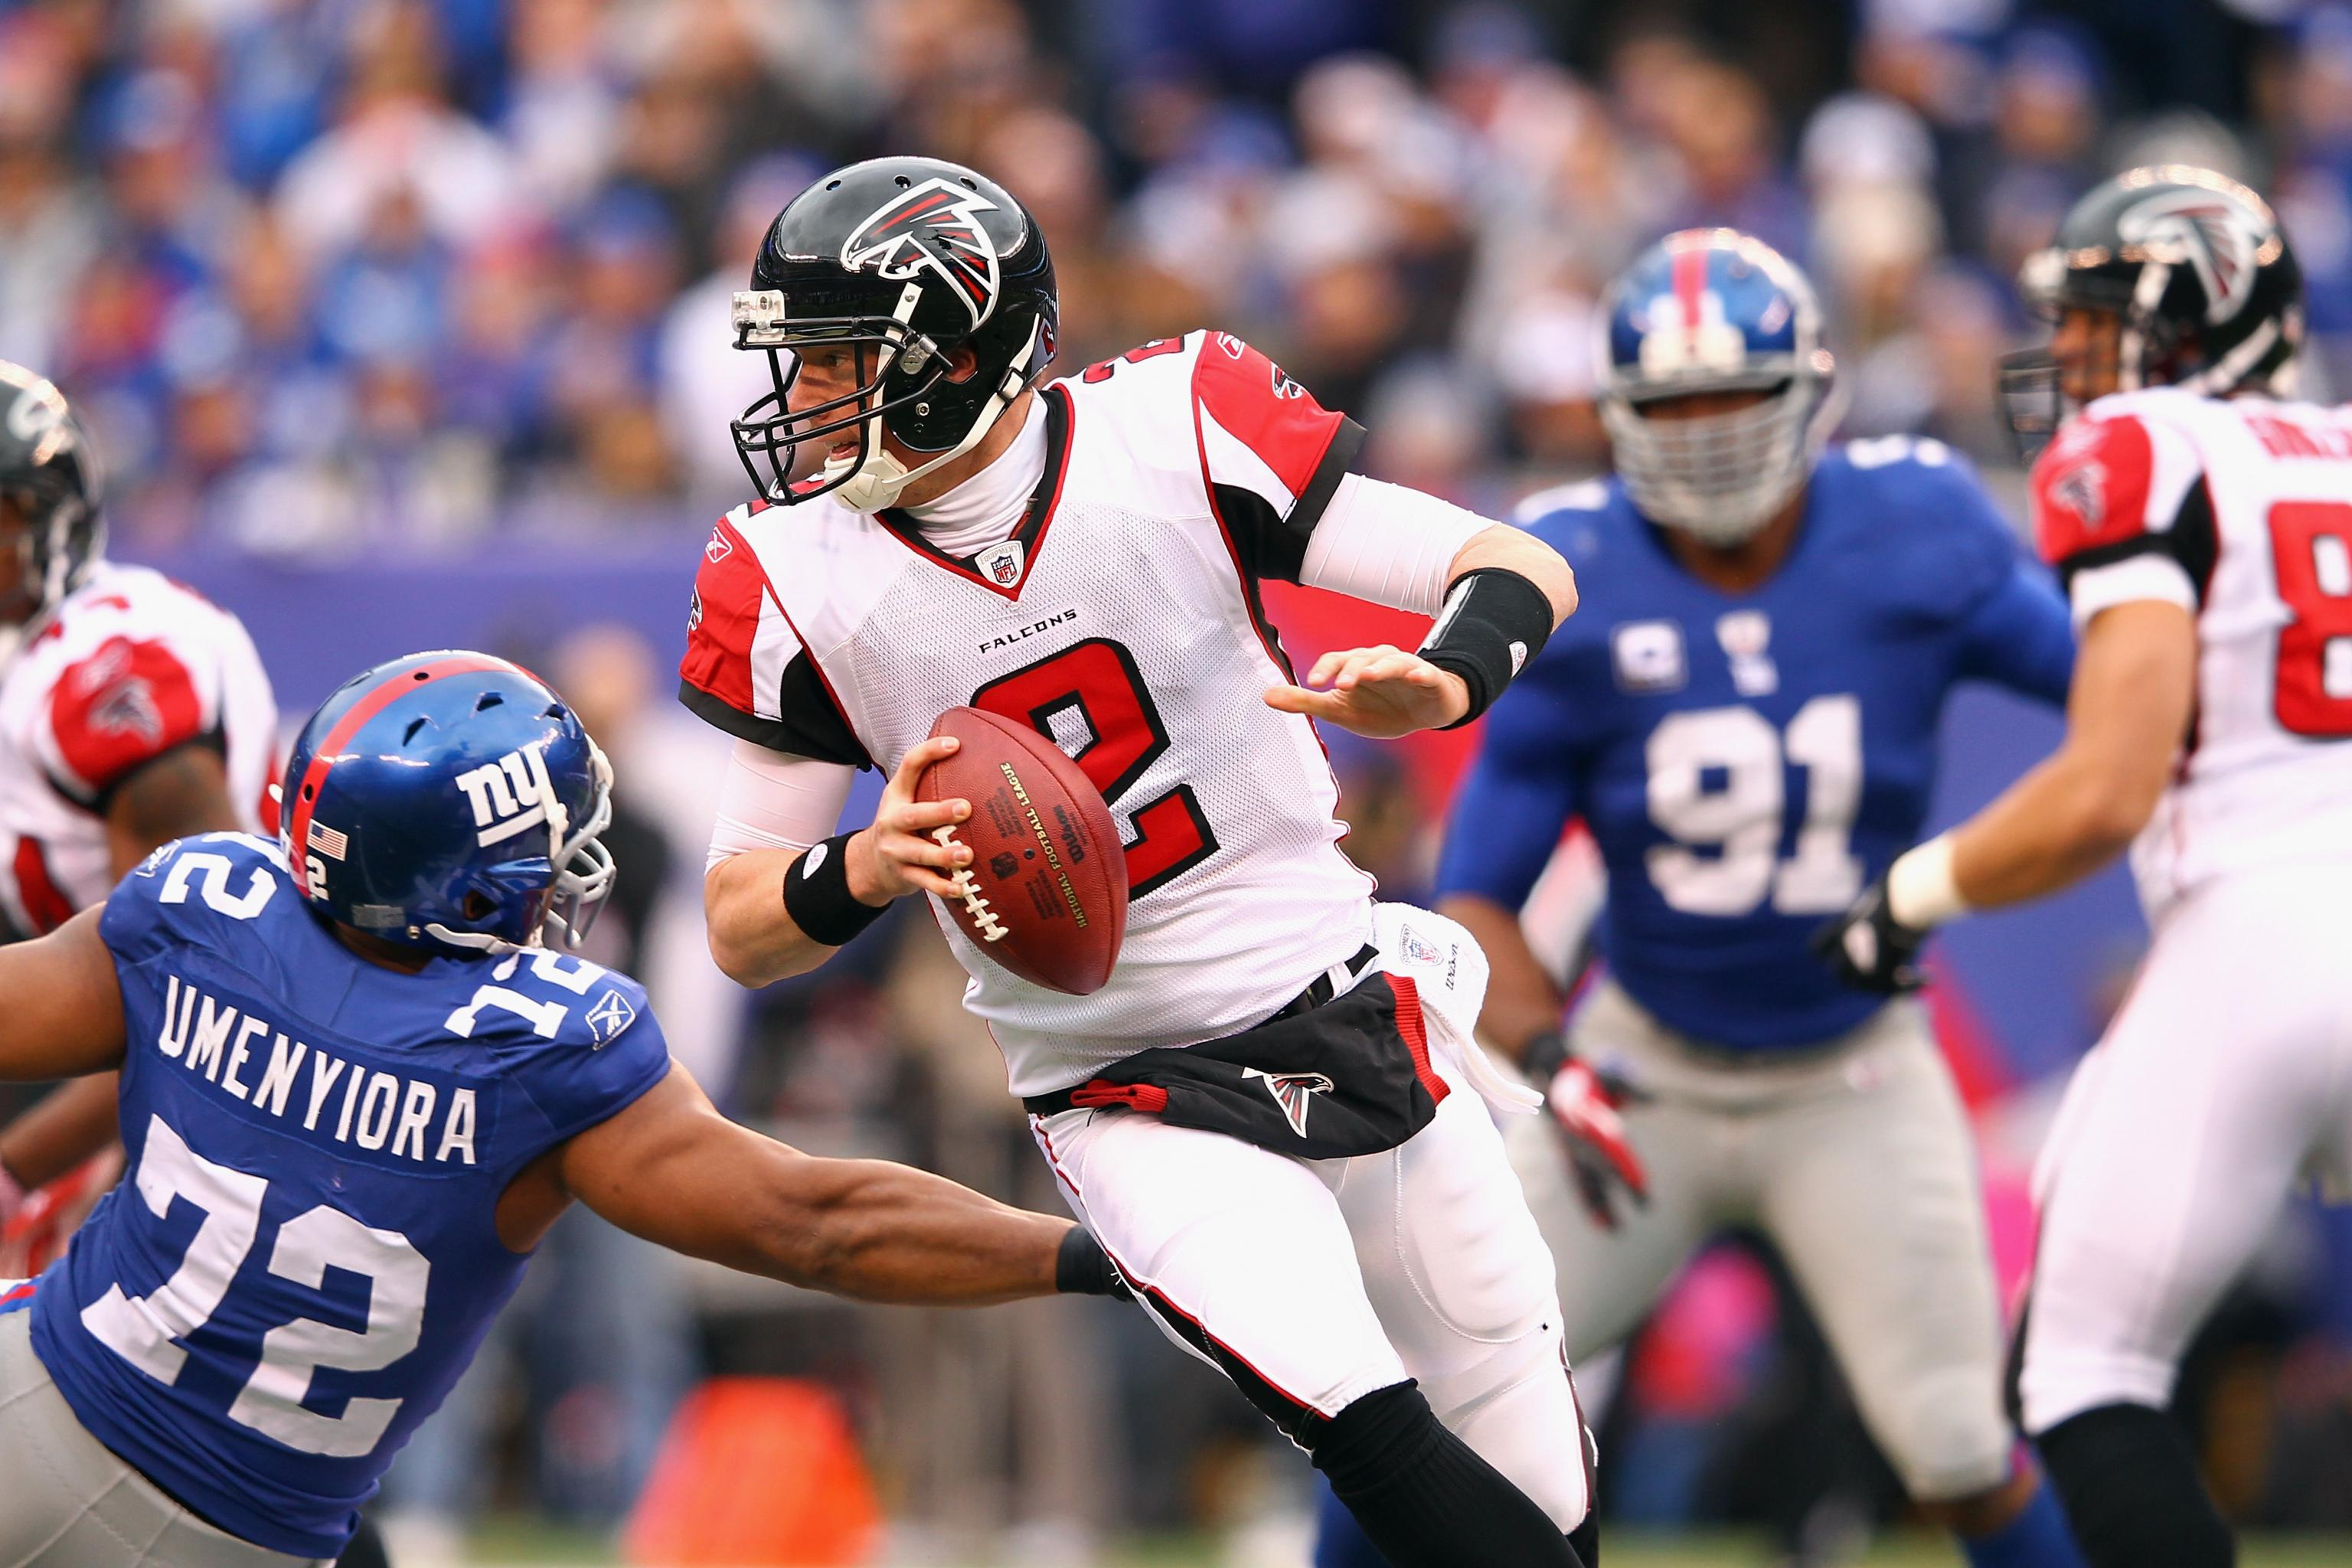 Matt Ryan S Split Personality Matty Ice And Melting In The Playoffs Bleacher Report Latest News Videos And Highlights